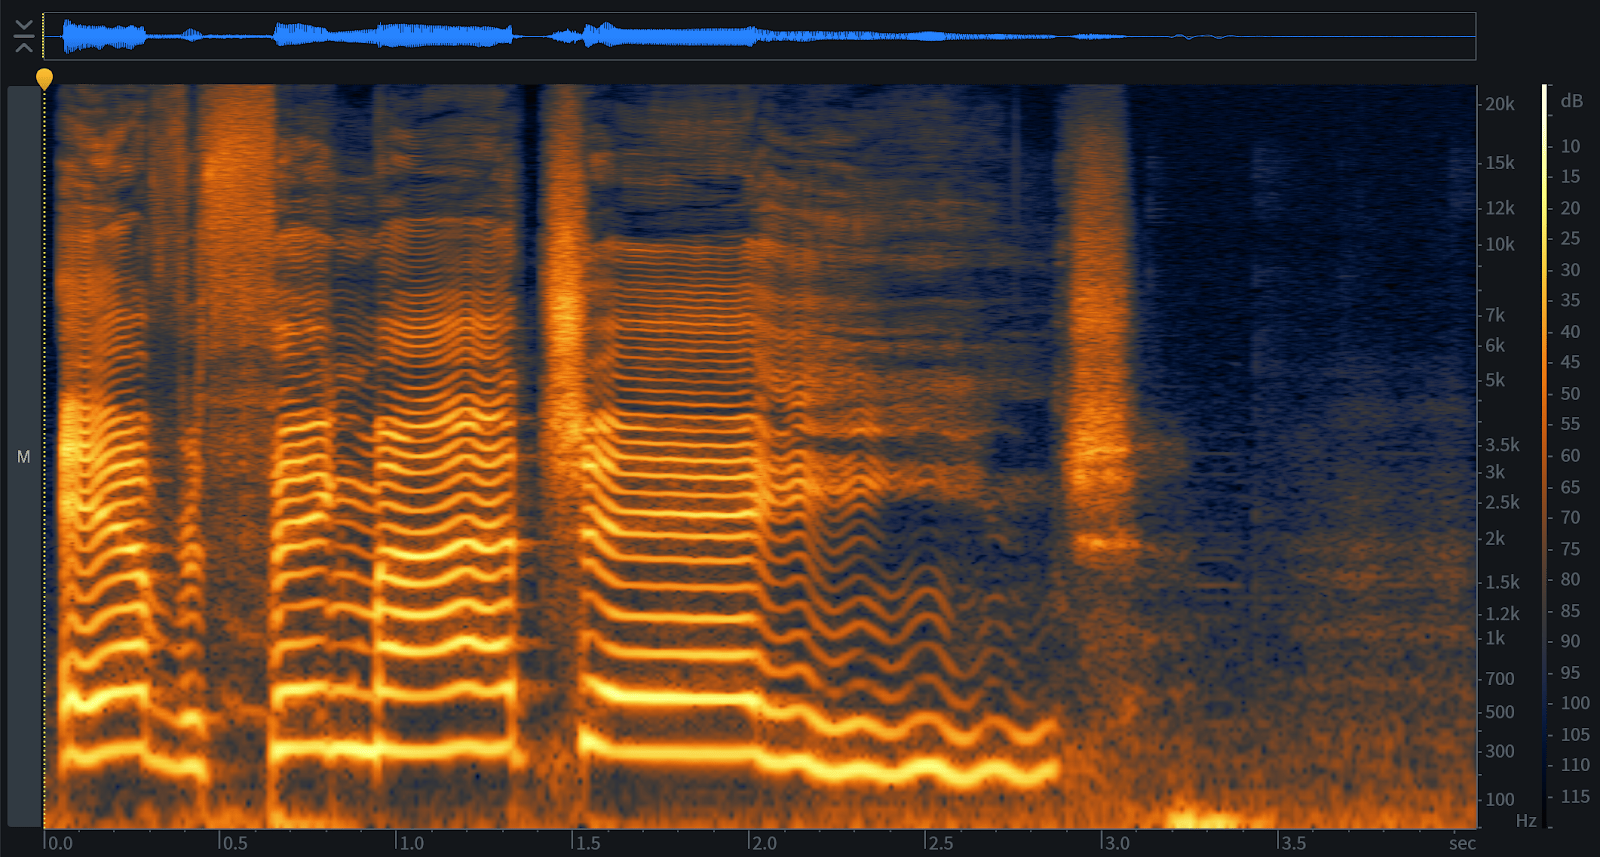 Viewing audio in the RX 7 spectrogram